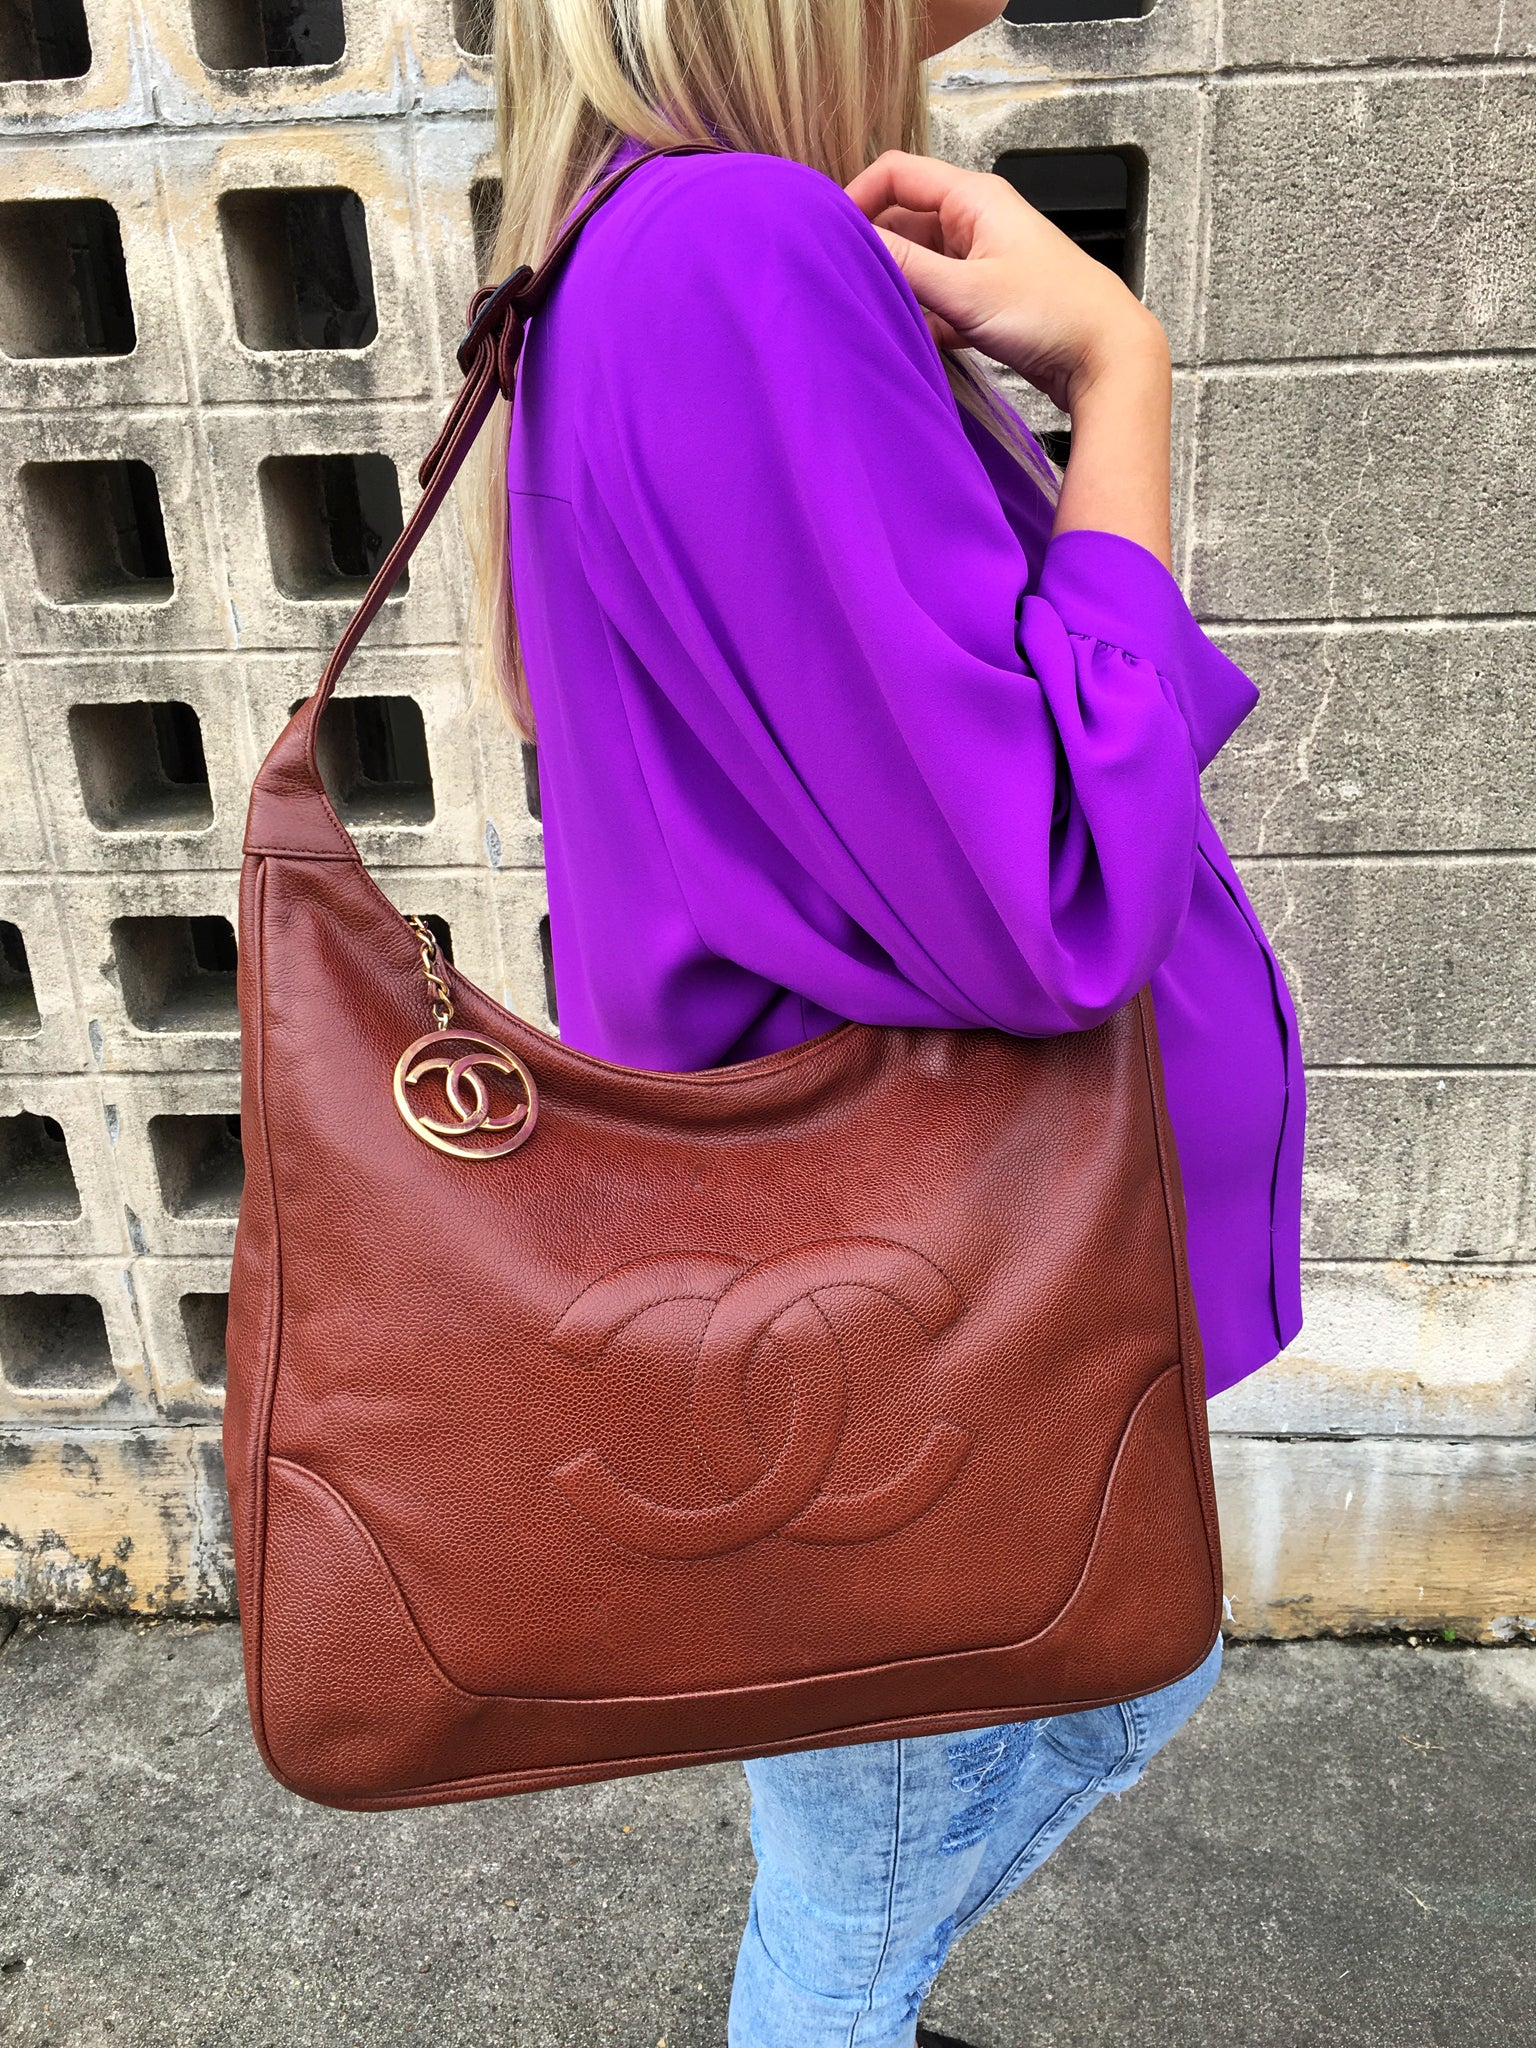 CHANEL Brown Caviar Leather Hobo Tote